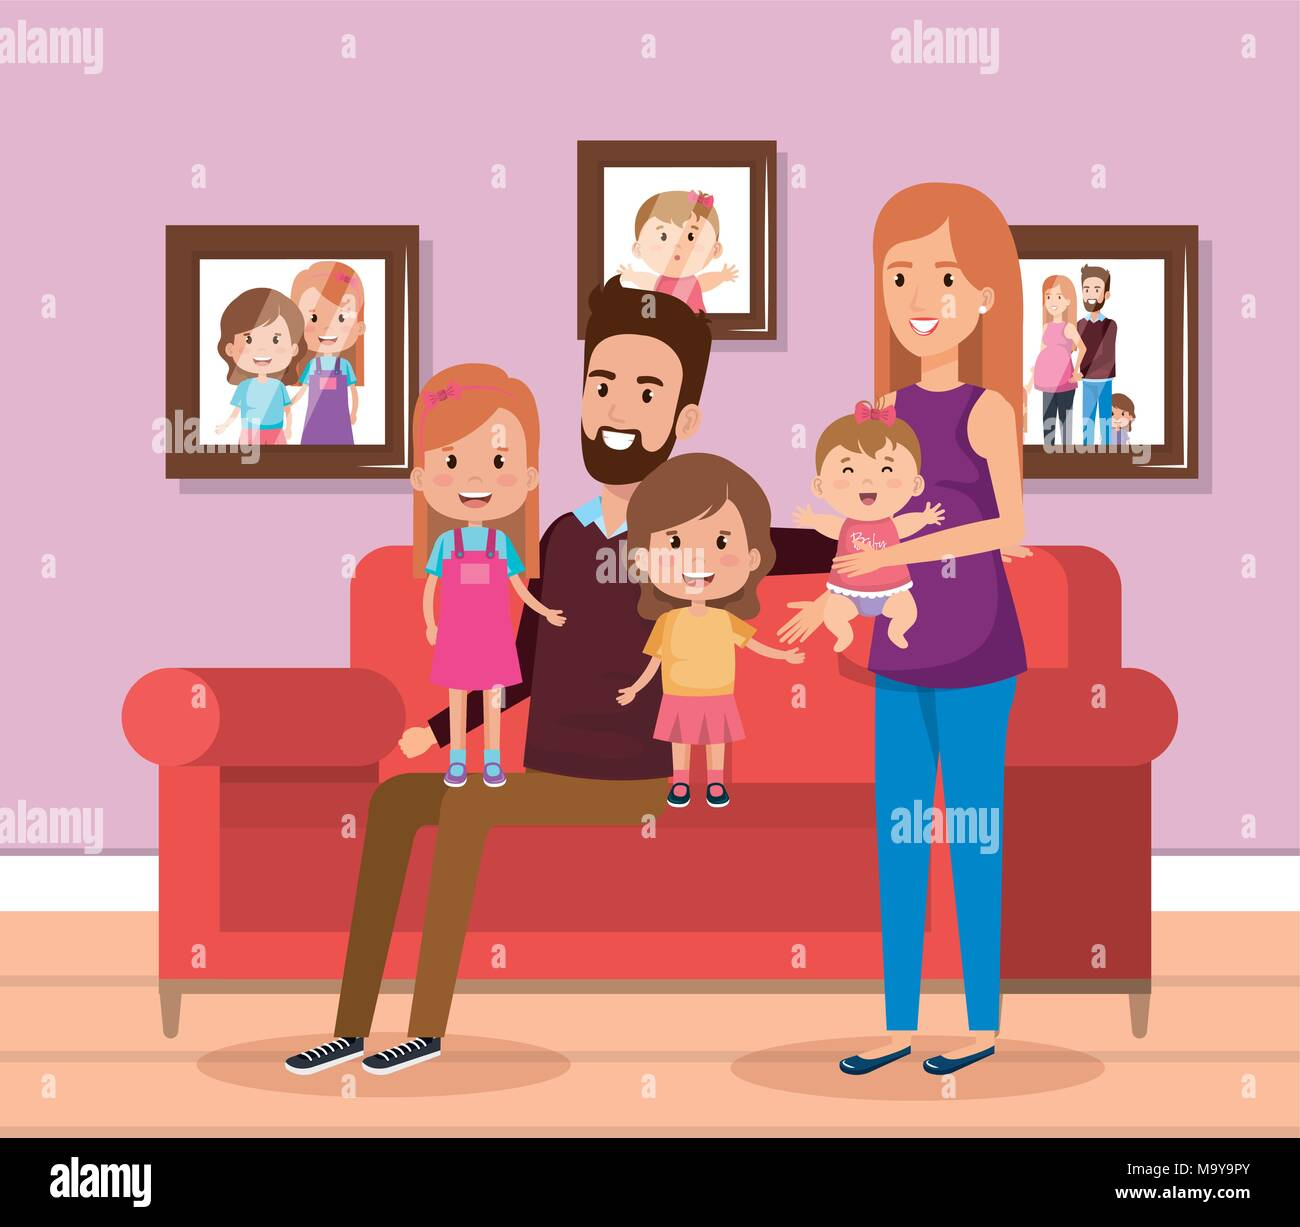 Cute Family Happy In The Living Room Characters Stock Vector Image Art Alamy